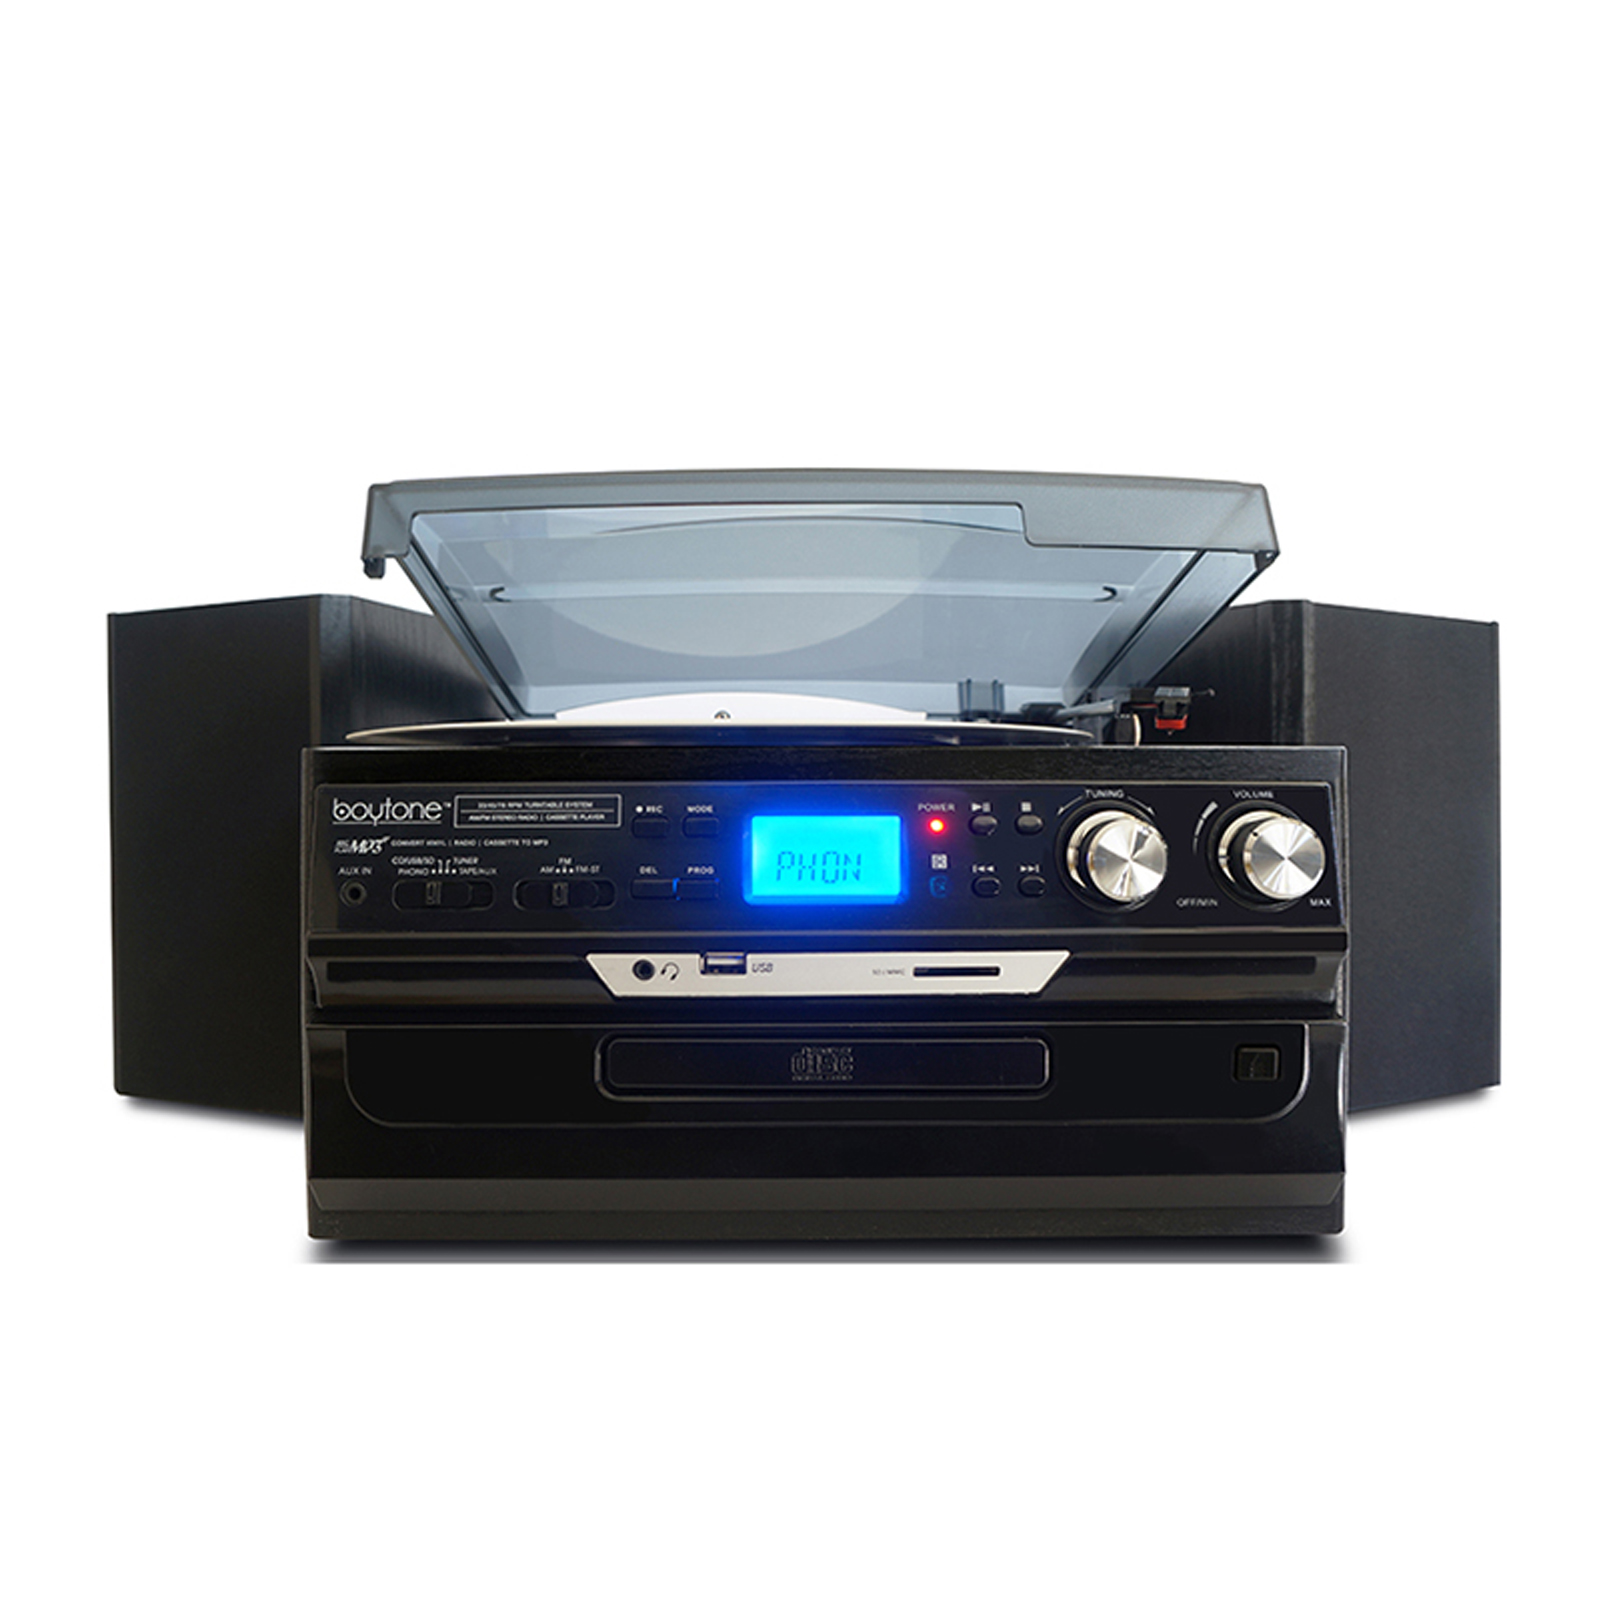 Boytone 7 in 1 Bluetooth 3 Speed Home Turntable System with CD, Cassette, AM/FM, USB, SD and AUX